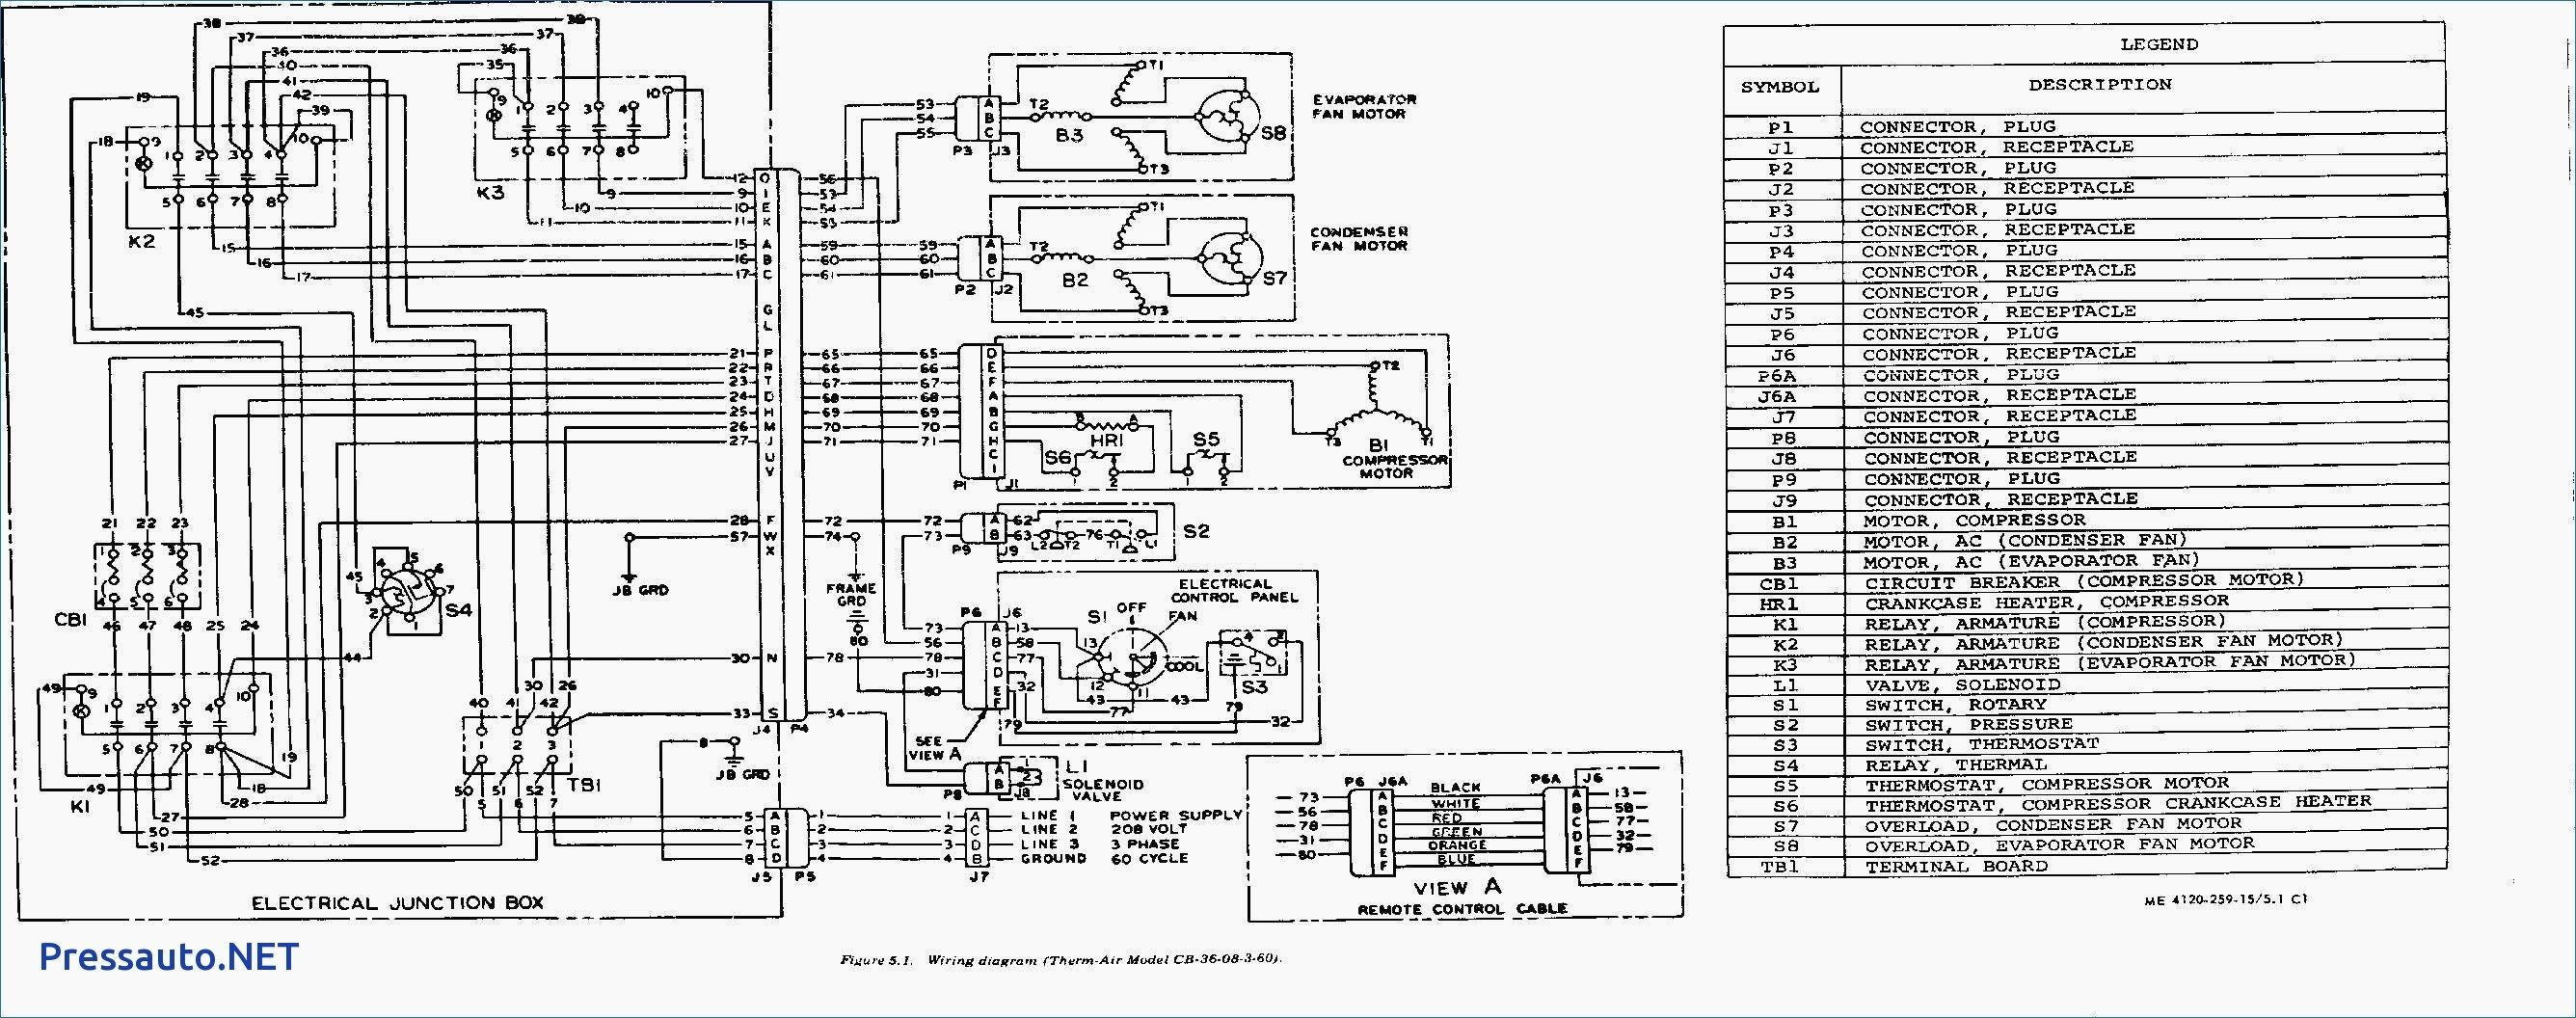 trane air conditioning schematics wiring diagram for you trane schematics diagrams [ 2672 x 1056 Pixel ]